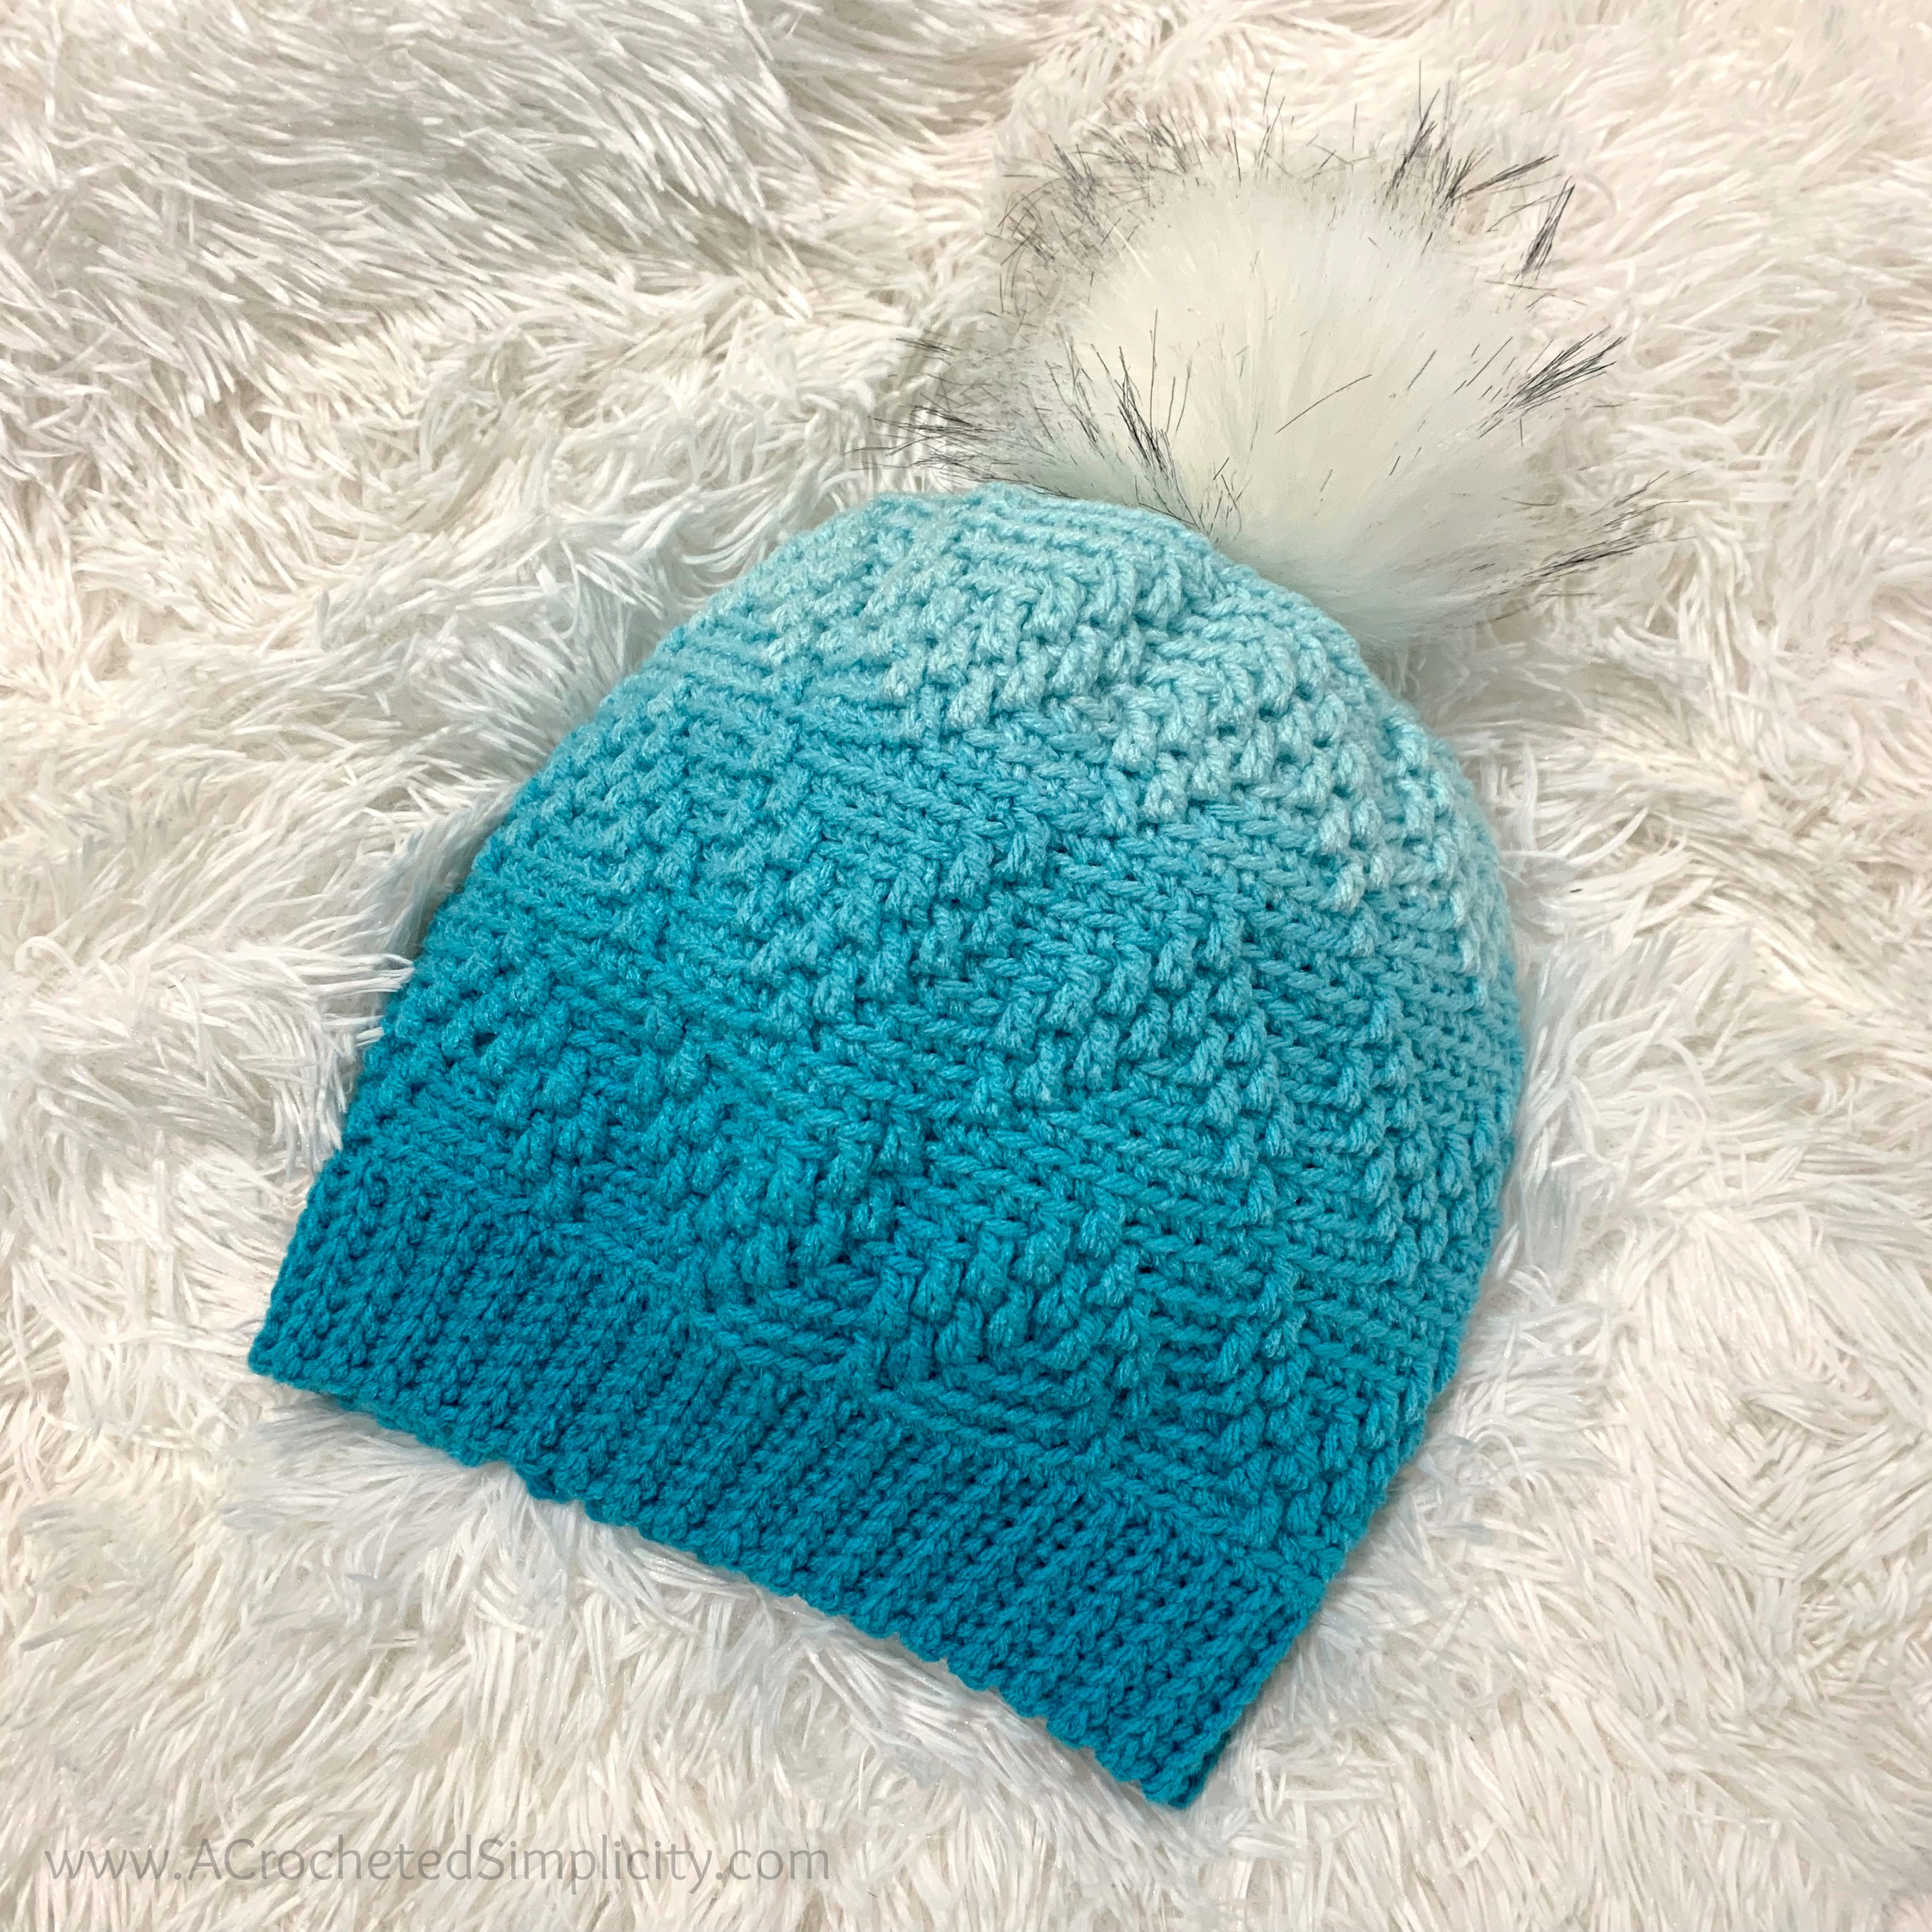 Free Crochet Hat Pattern - Arrows Beanie & Slouch by A Crocheted Simplicity #freecrochetpattern #freecrochethatpattern #crochethatpattern #crochetbeaniepattern #crochetslouchpattern #crochetbeanie #crochethat #crochetslouch #texturedcrochet #crochetstyle